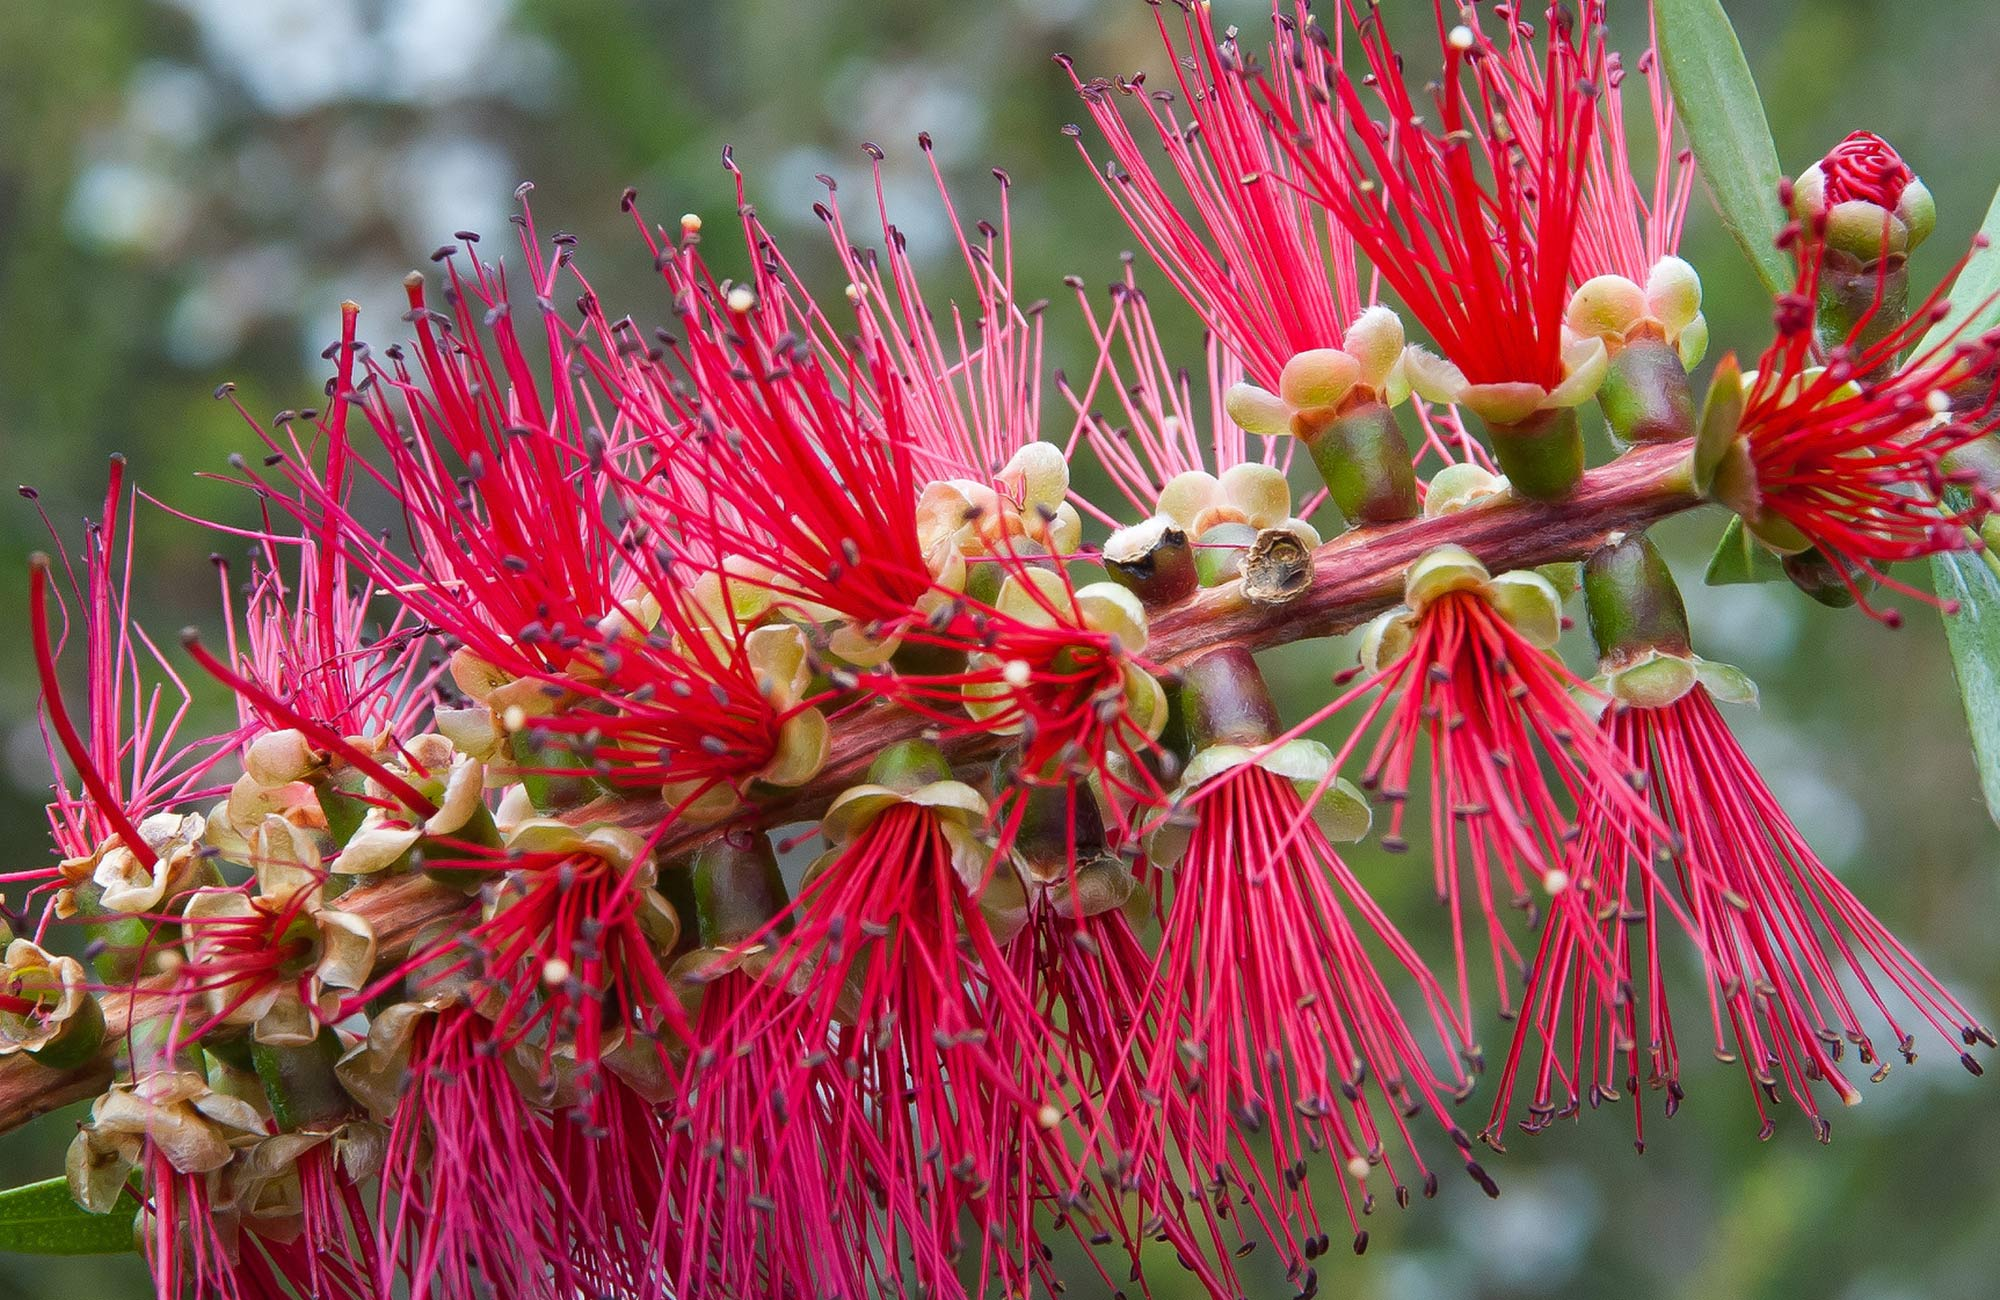 Red bottlebrush flower in Budderoo National Park. Photo credit: Michael Van Ewijk © DPIE